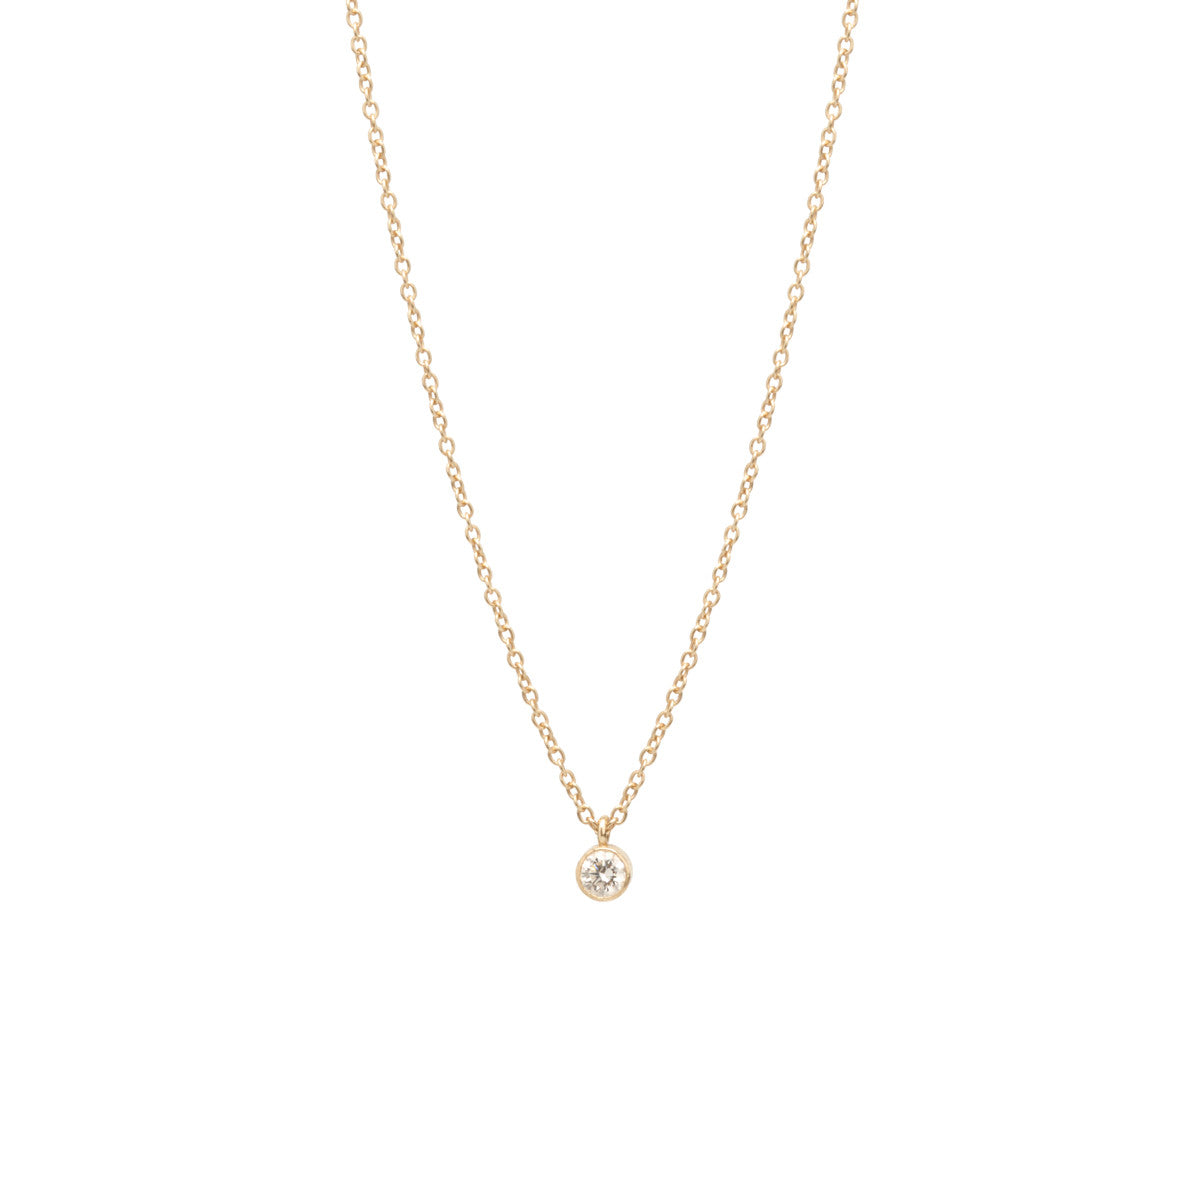 14k single large diamond pendant necklace | APRIL BIRTHSTONE